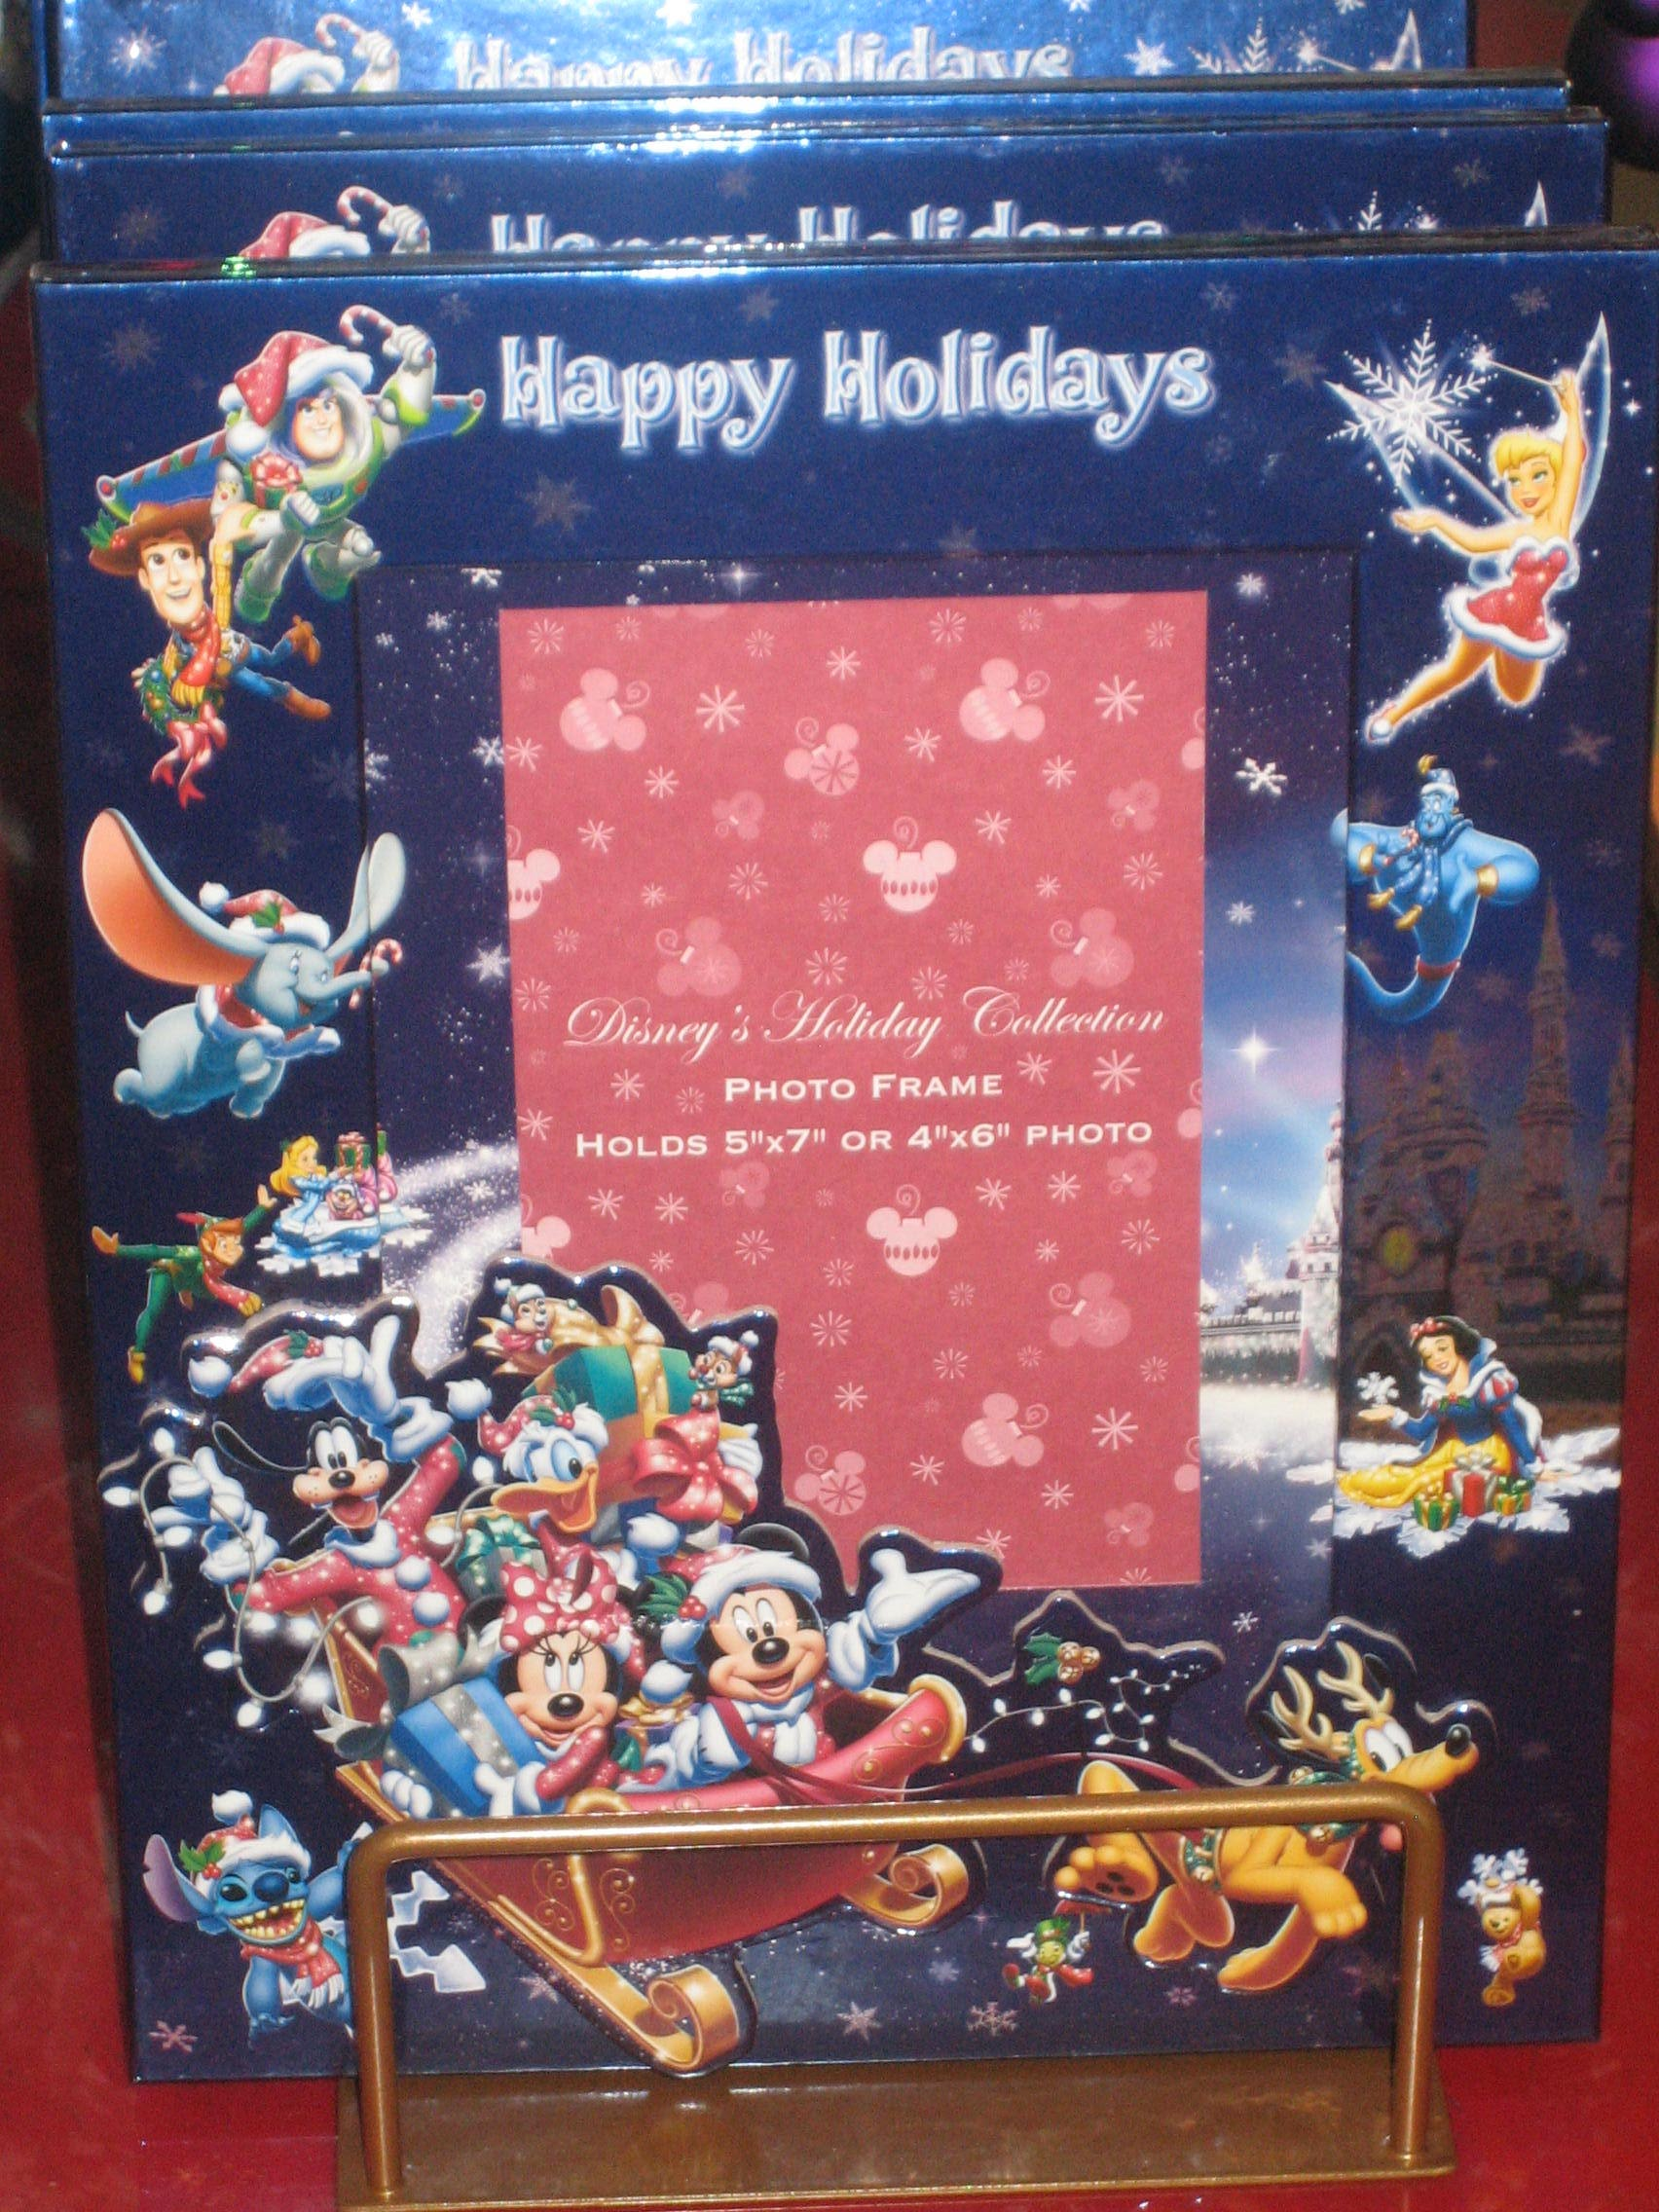 happy holidays disney picture frame image 1228 - Disney World Picture Frames